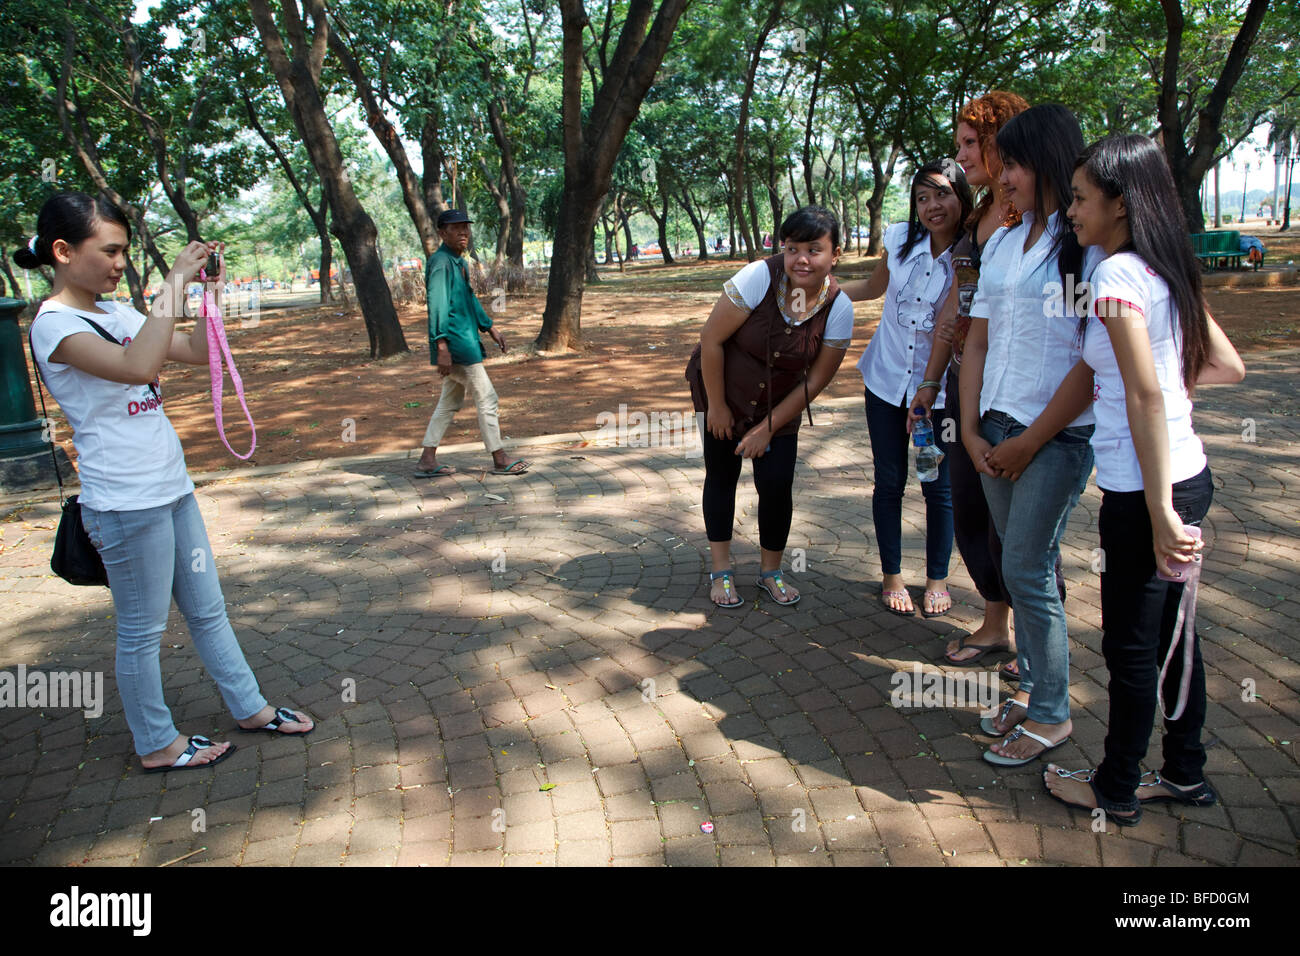 a group of Indonesian girls pose to a photo with an European tourist in a park in Jakarta, Indonesia - Stock Image